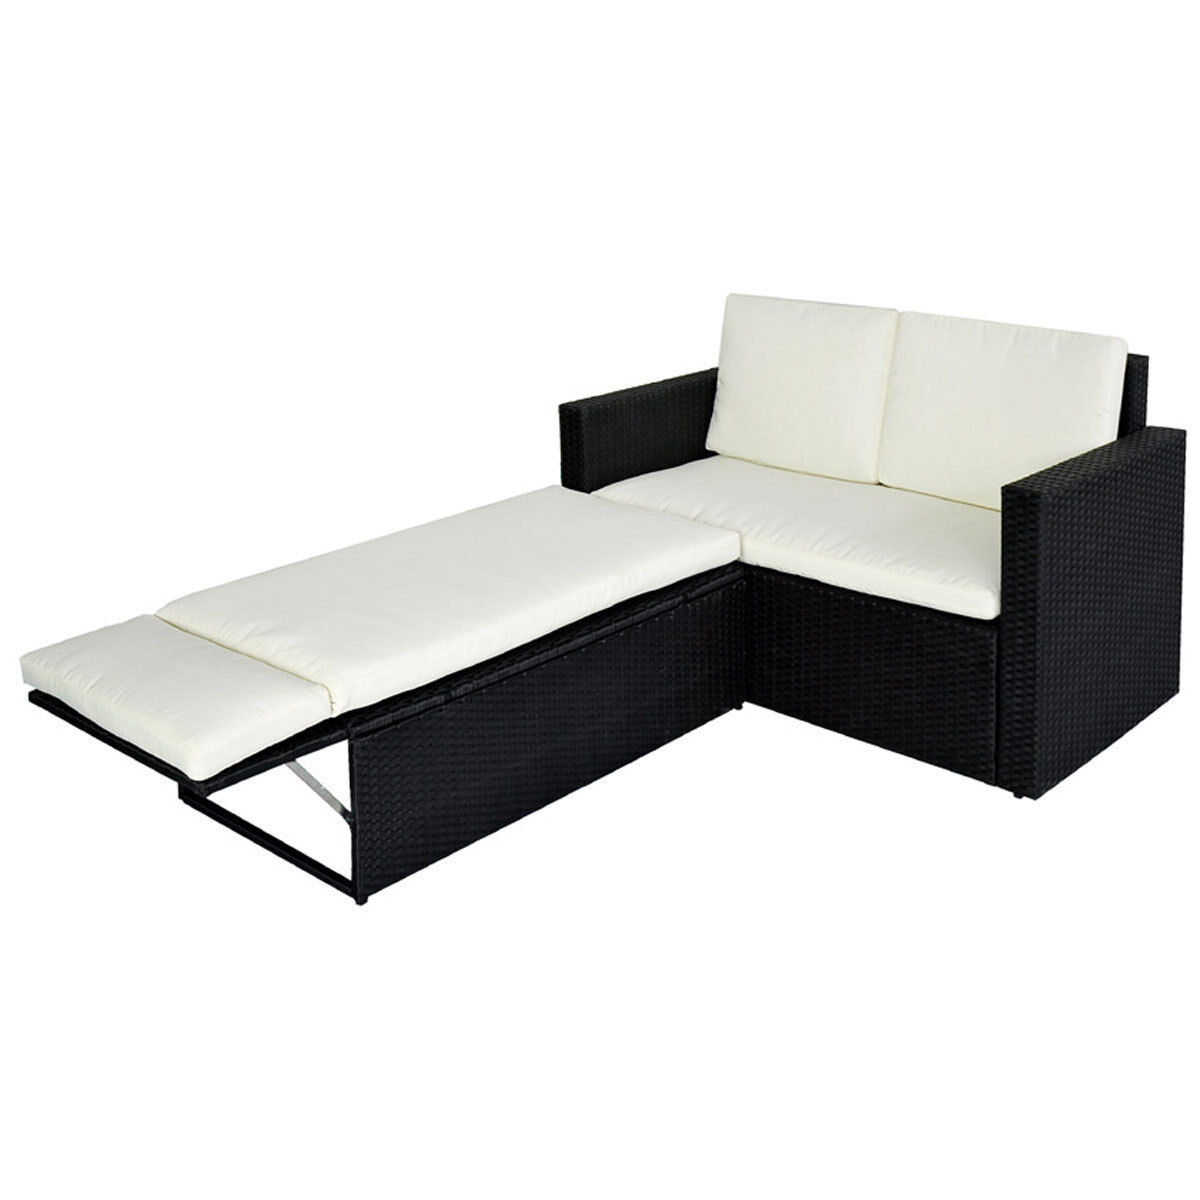 poly rattan lounge schwarz sofa garnitur polyrattan sitzgruppe gartenm bel eur 139 90 picclick de. Black Bedroom Furniture Sets. Home Design Ideas